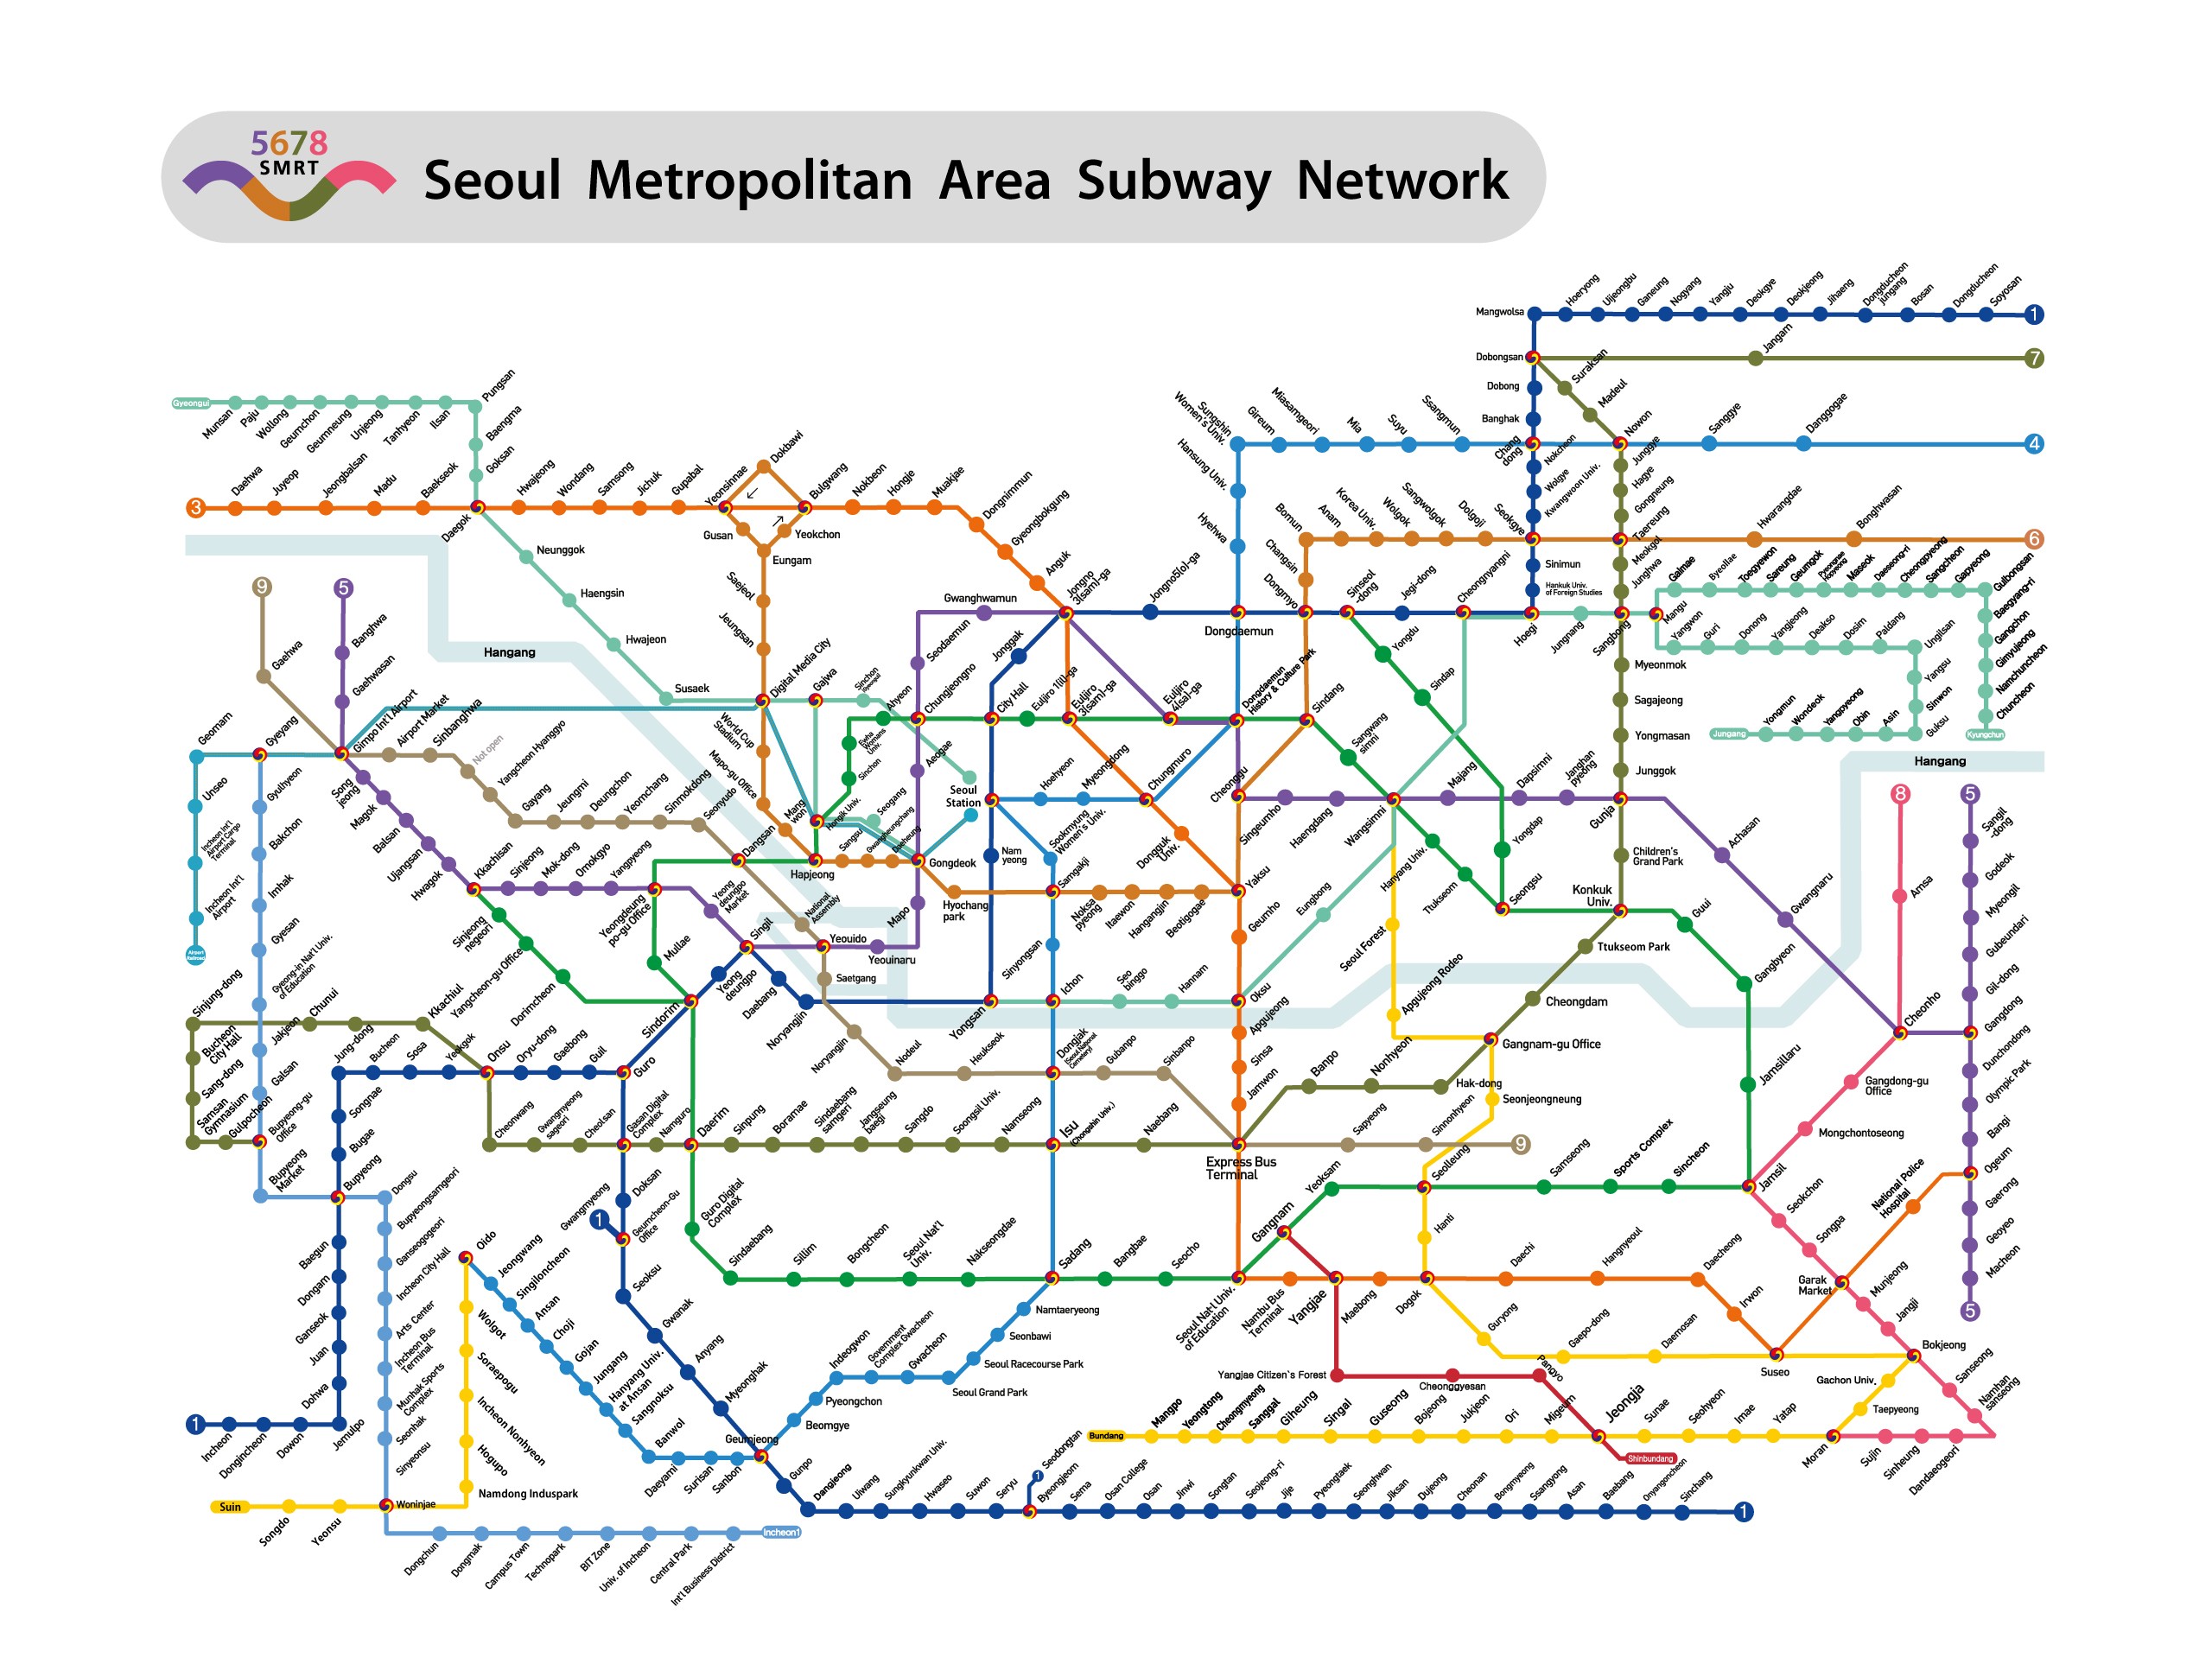 Korea Subway Map 2014.One Of The Best Subway Systems In The World Seoul City Subway System Hiexpat Korea